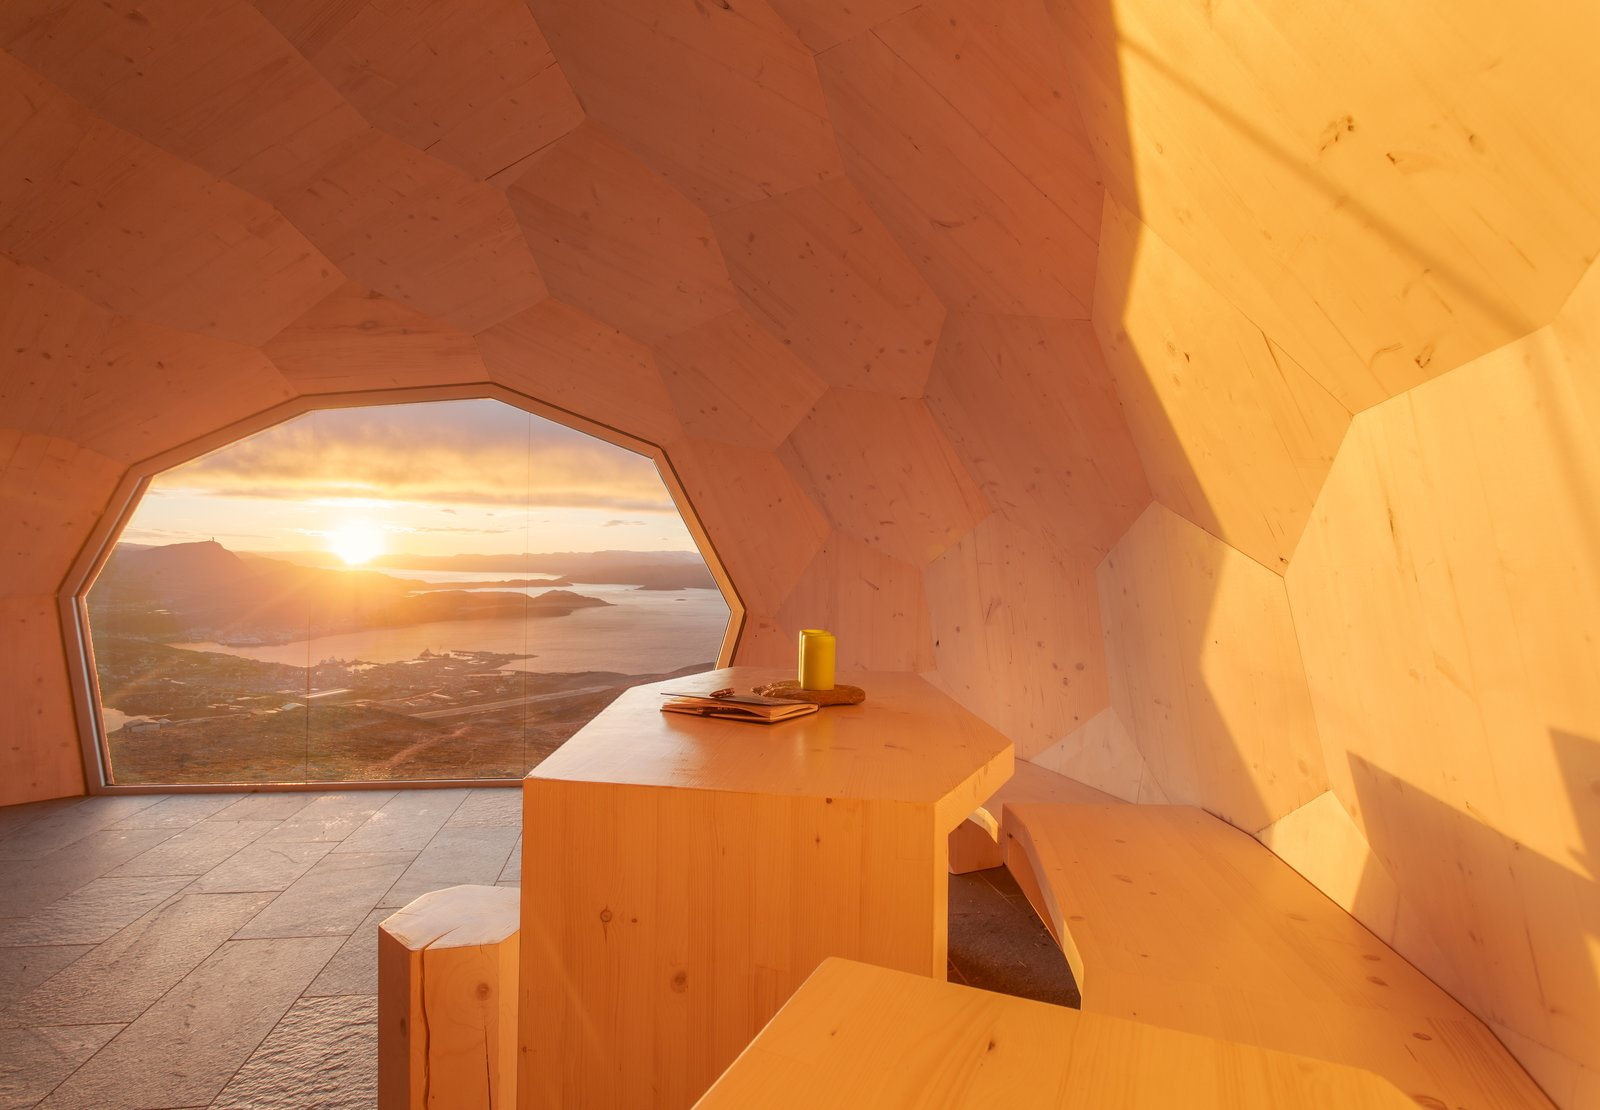 Hammerfest Cabin interior with sunset view